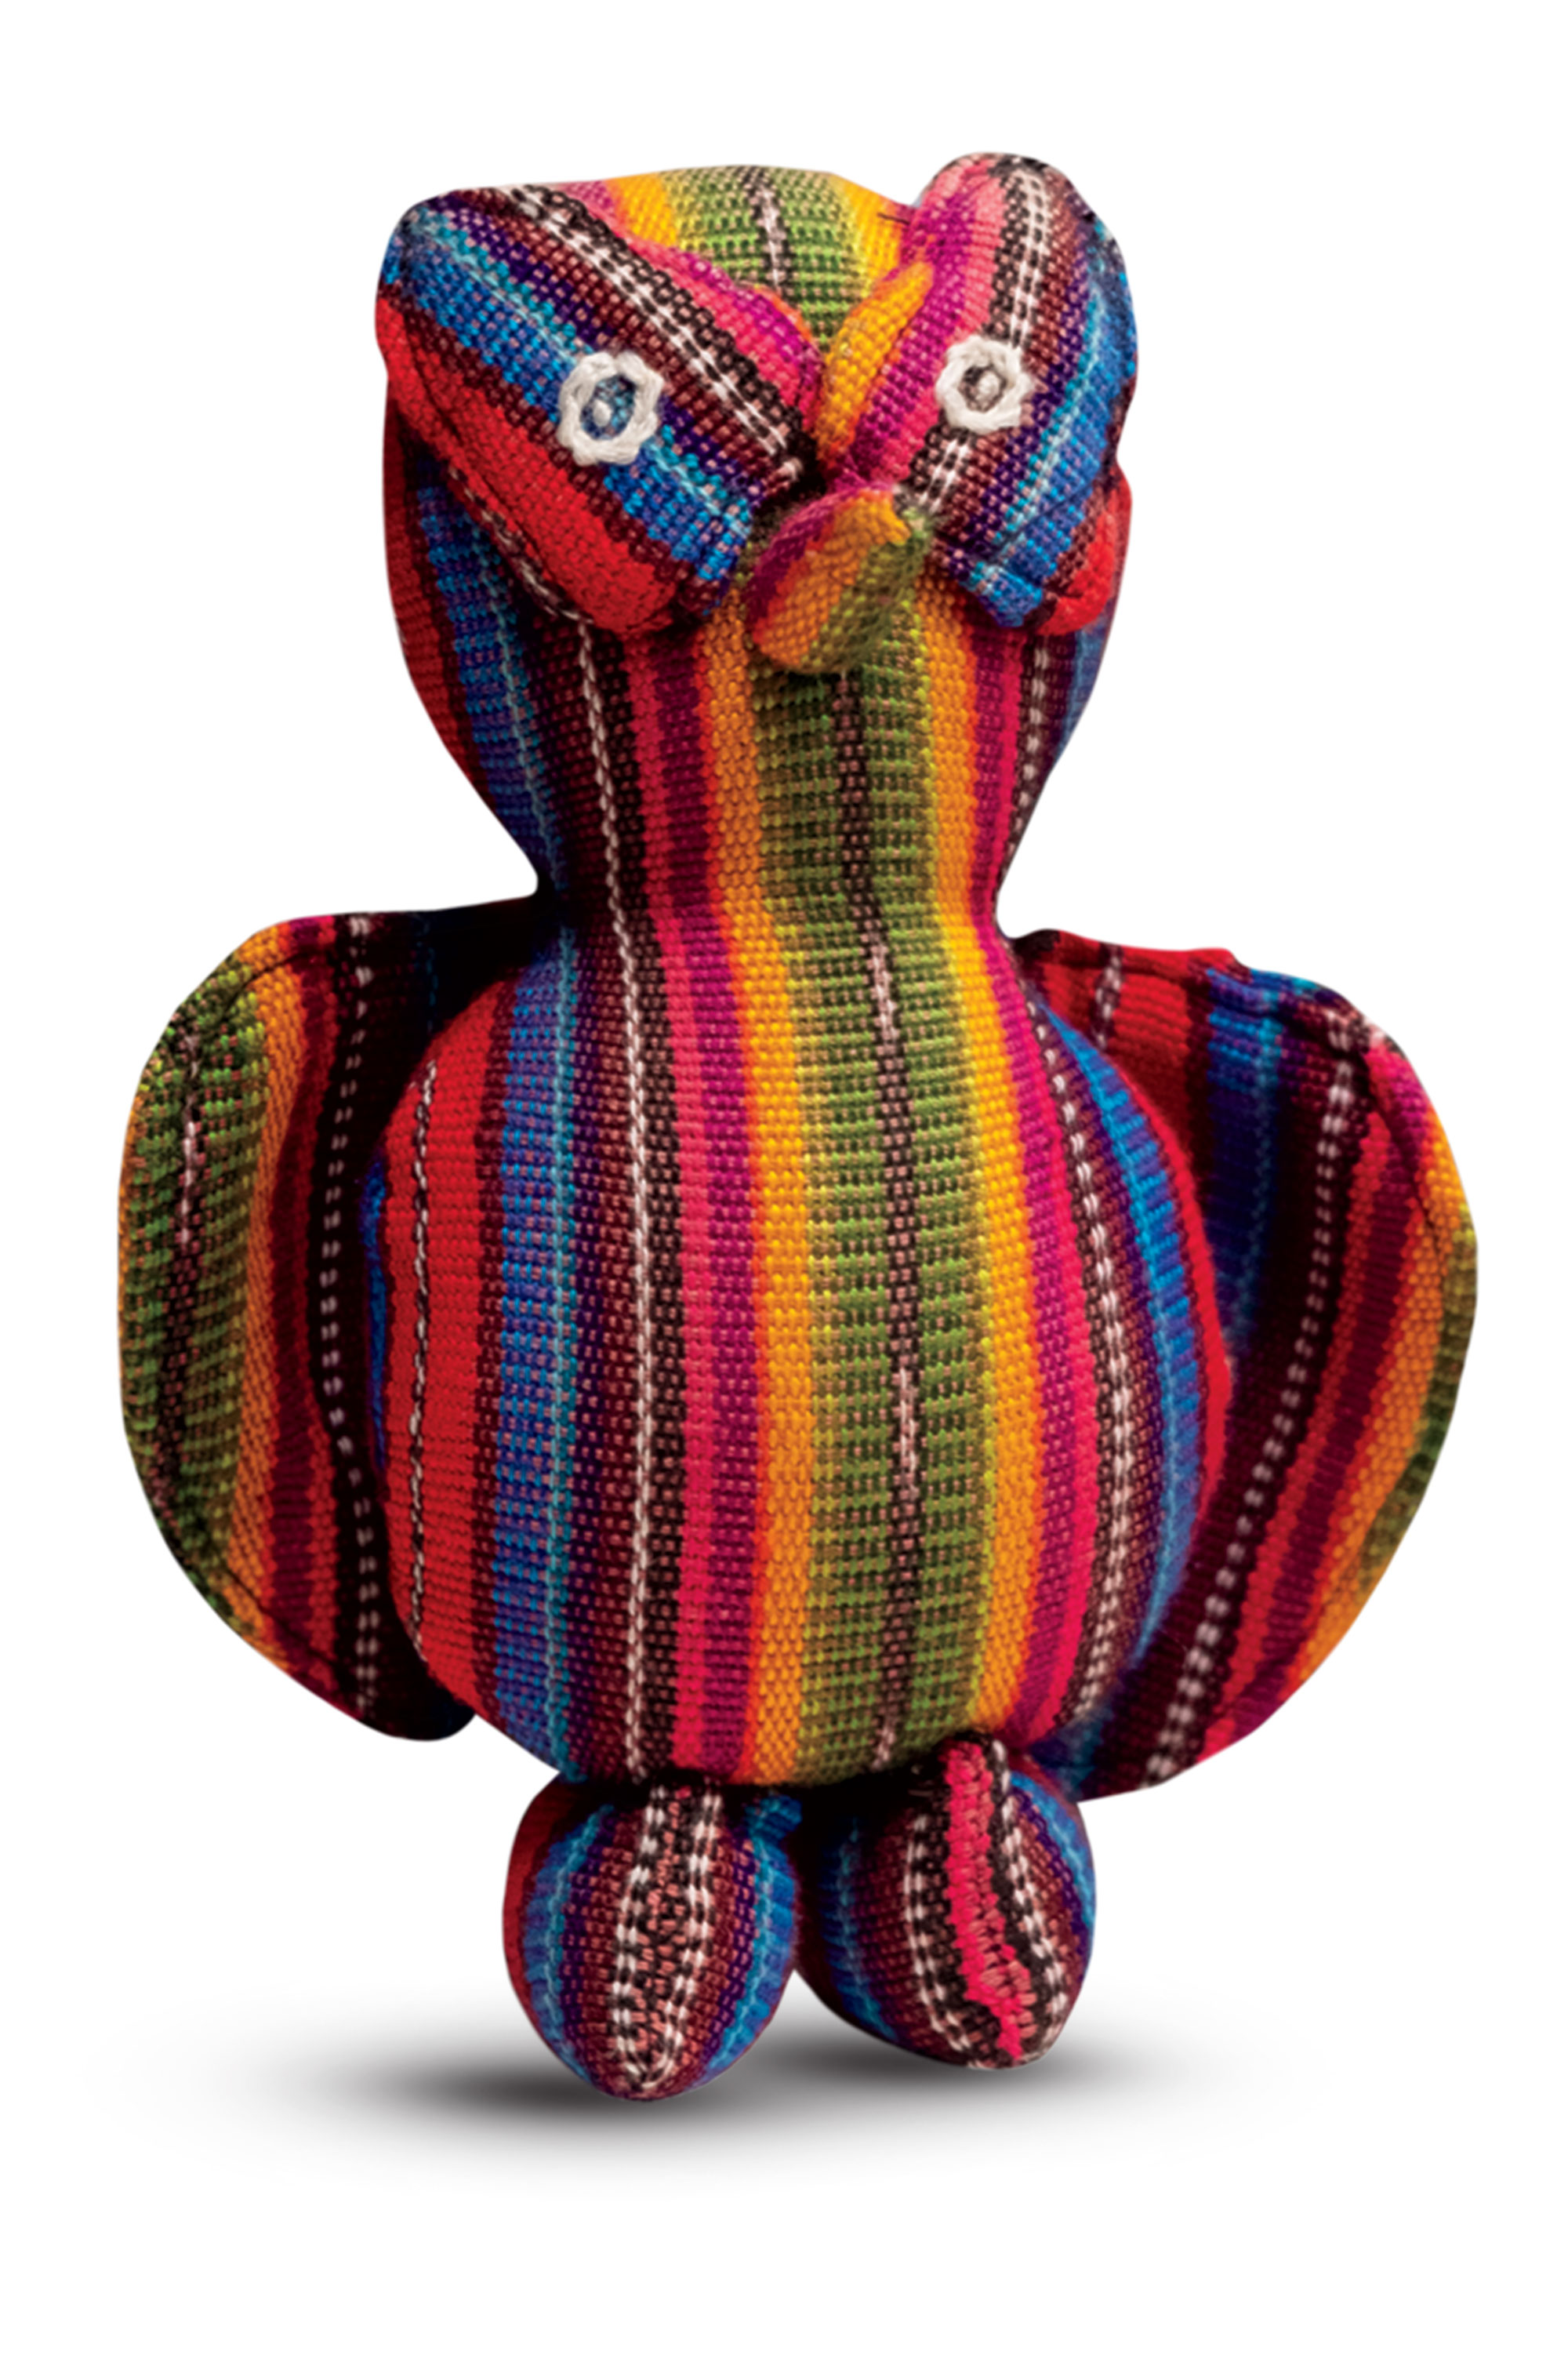 Dr. Lewis Albert Andres was gifted this hand-dyed and woven doll from a Paraguayan family after repairing their child's cleft lip during a 2012 Operation Smile relief trip.